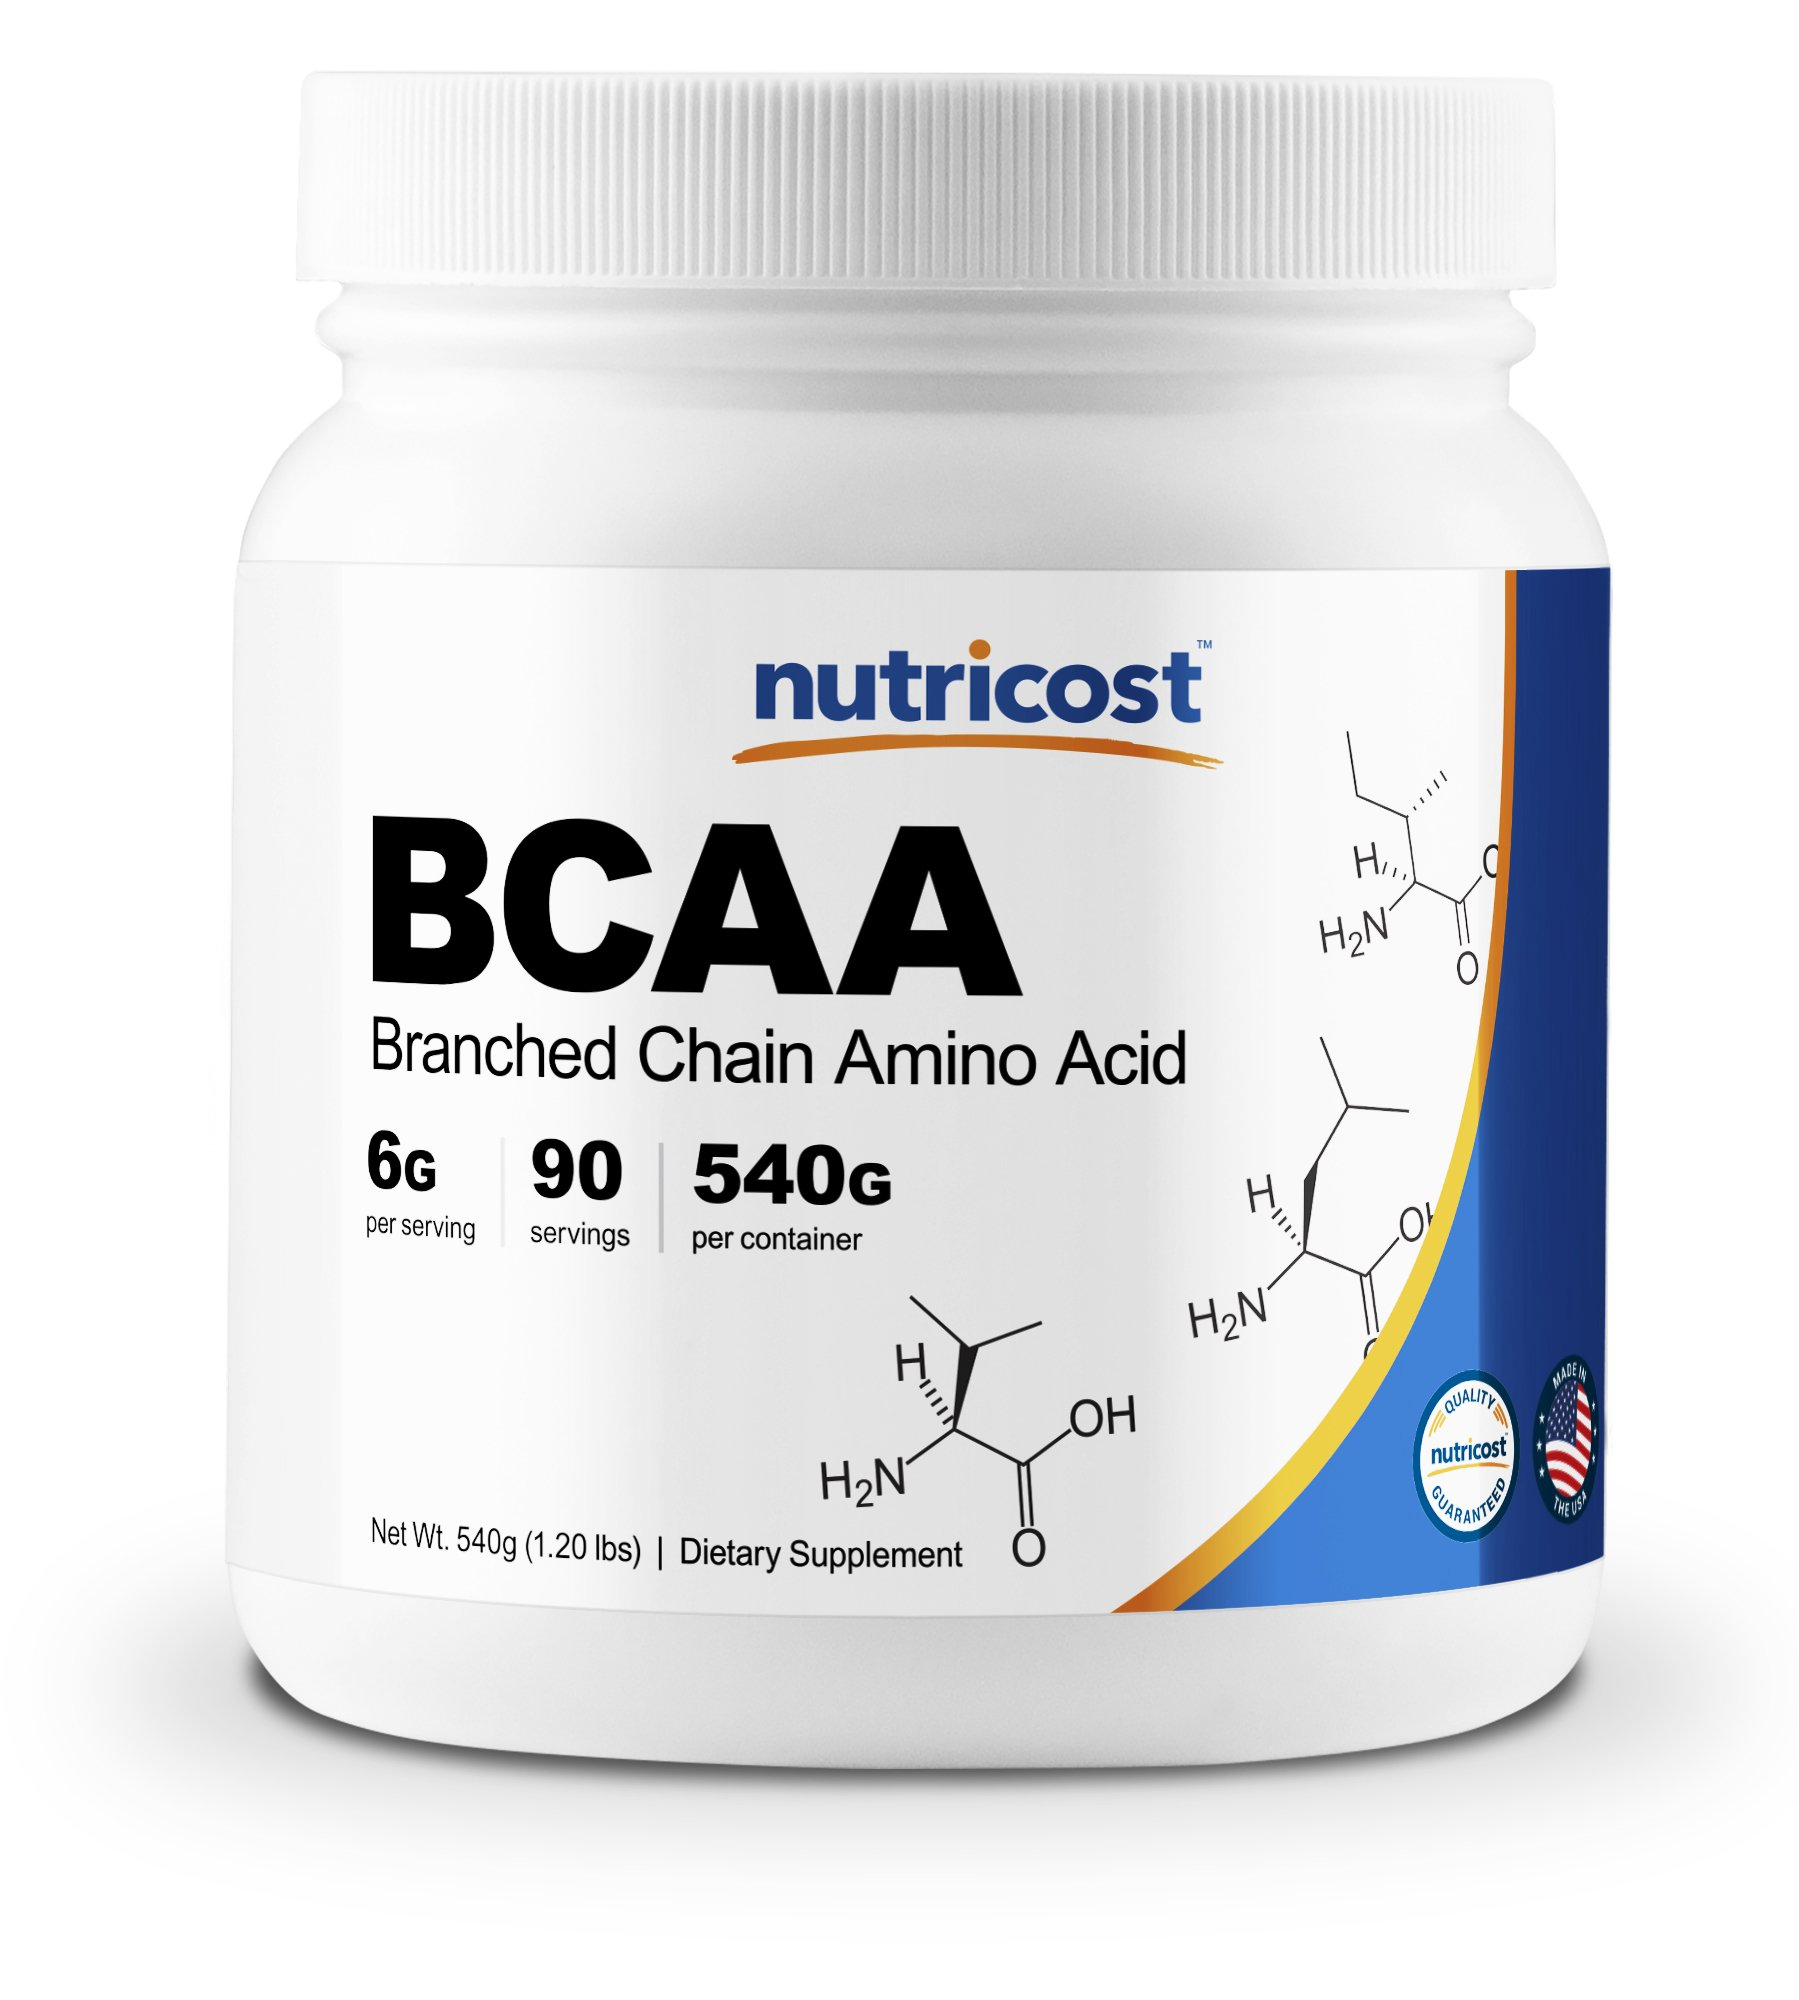 Nutricost BCAA Powder 2:1:1 90 Servings - High Quality Branched Chain Amino Acids